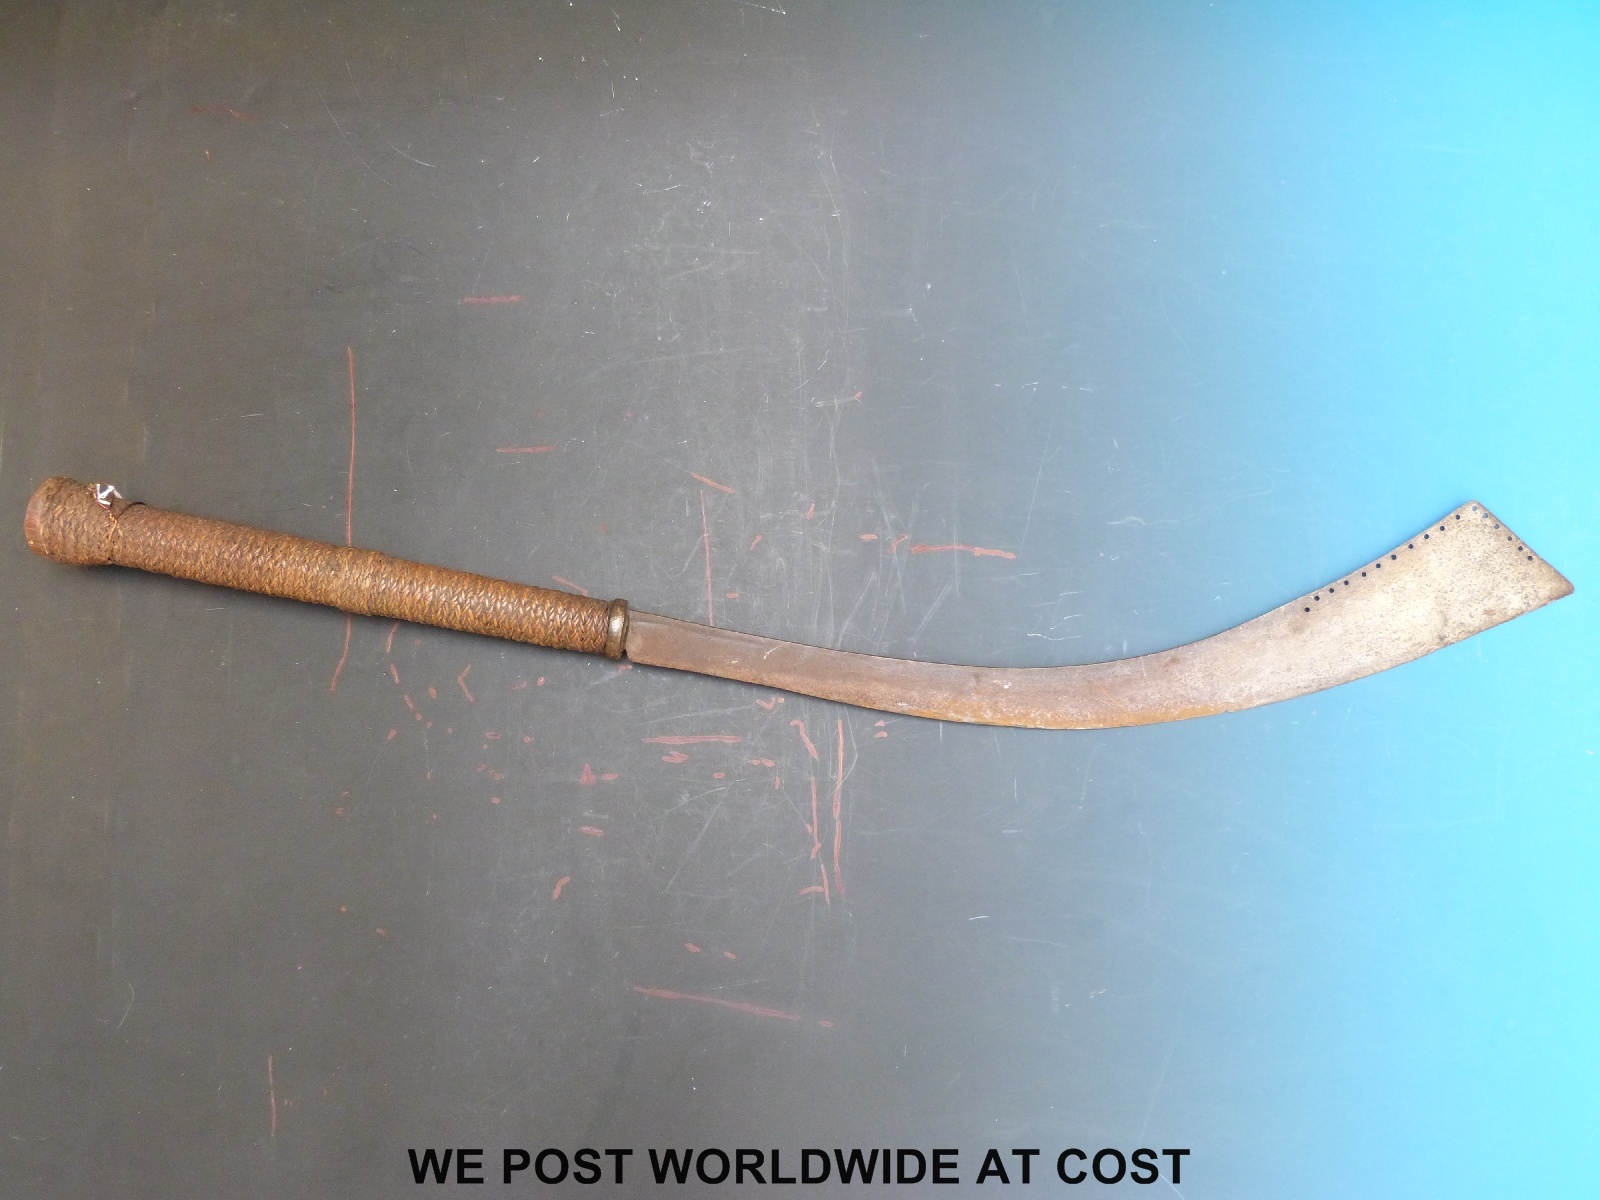 Lot 1565 - A Burmese or Cambodian, East Asian dha type sword with woven cane,